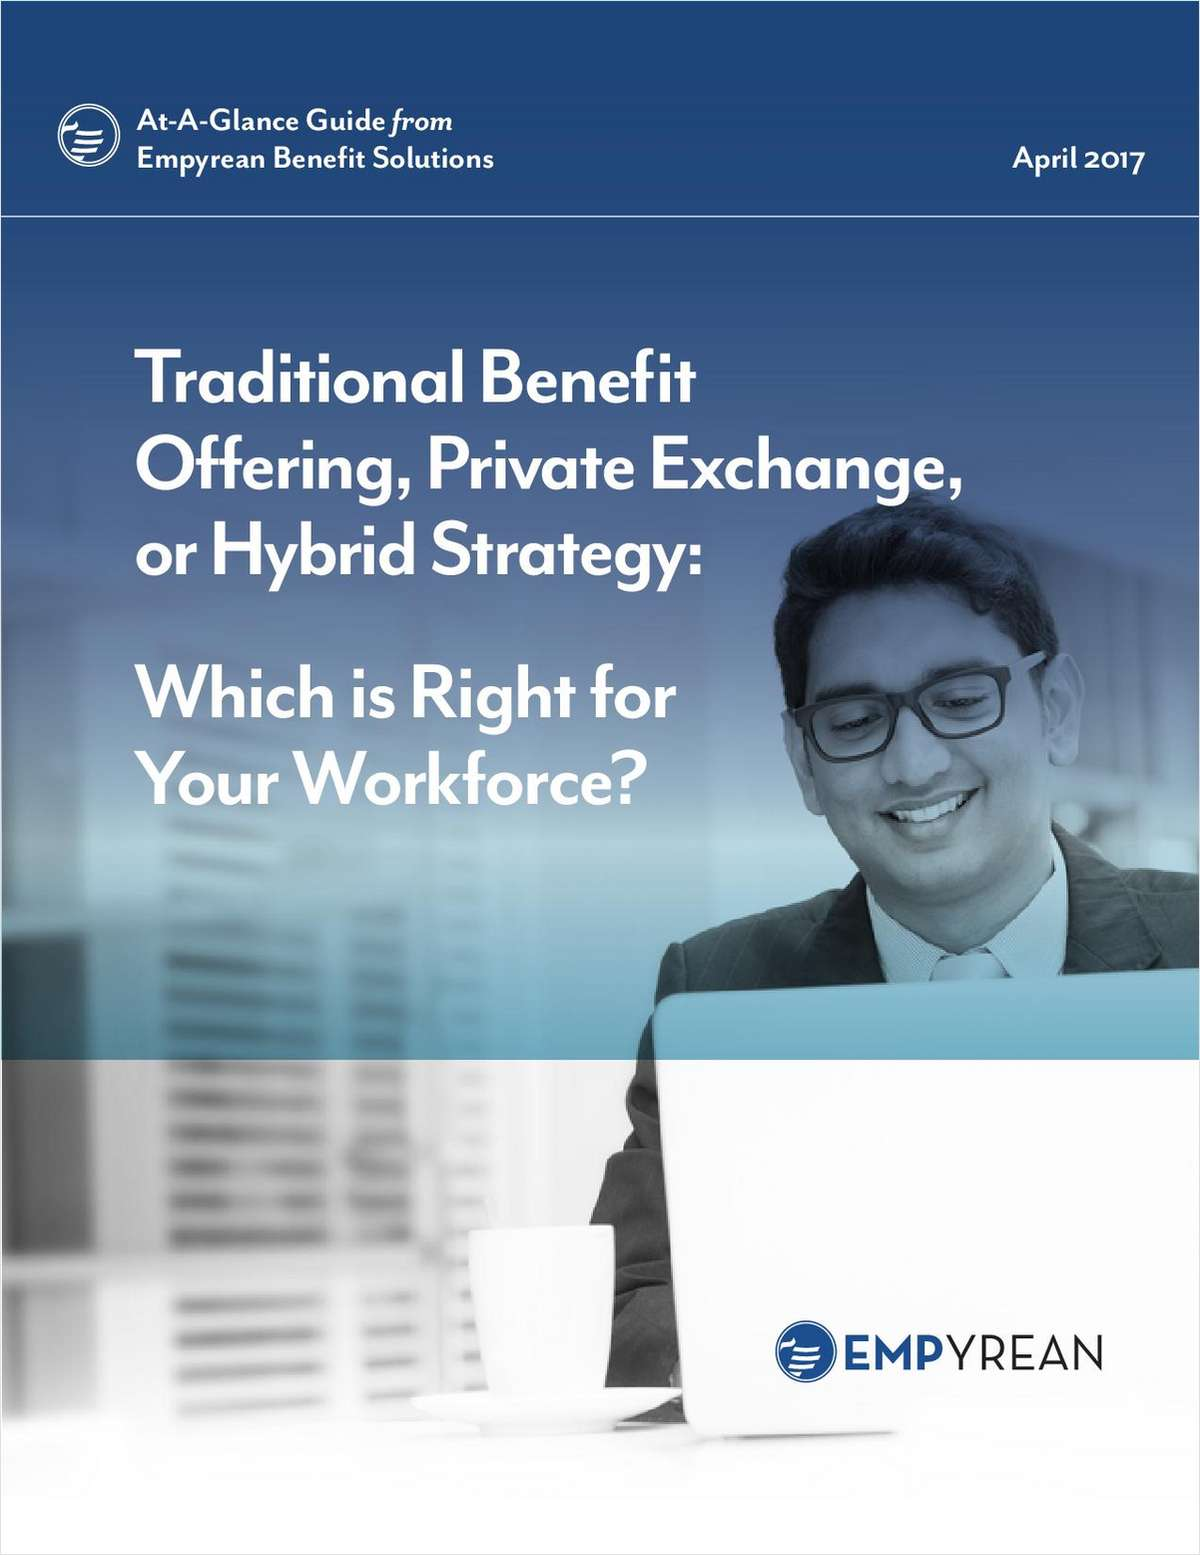 Traditional Benefit Offering, Private Exchange, or Hybrid Strategy: Which is Right for Your Workforce?